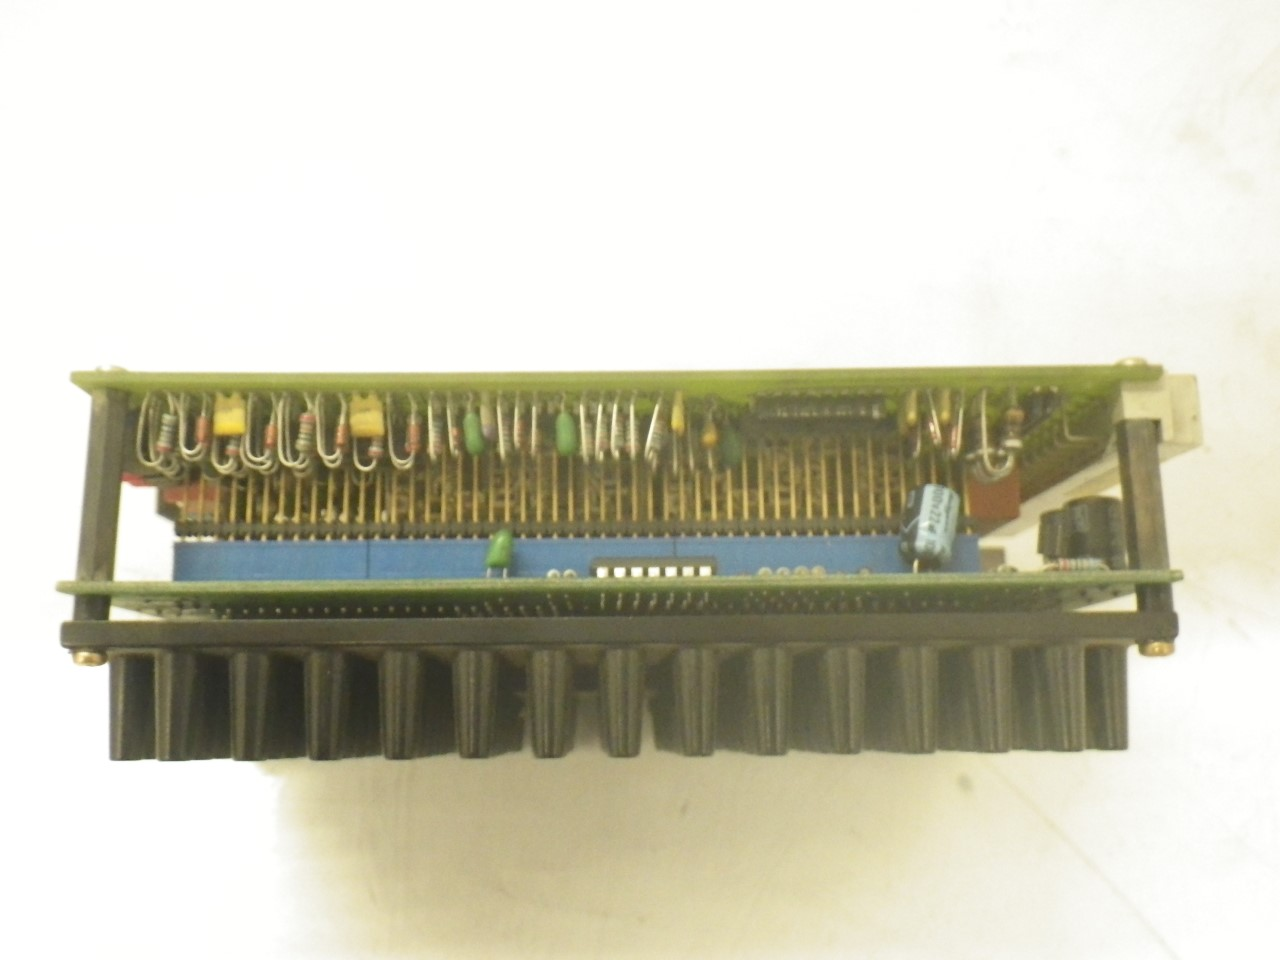 IMGP8387D 550 RS 19 Berger Lahr Stepper Drive + Siemens B1500-D325 Board(Used Tested) (17)